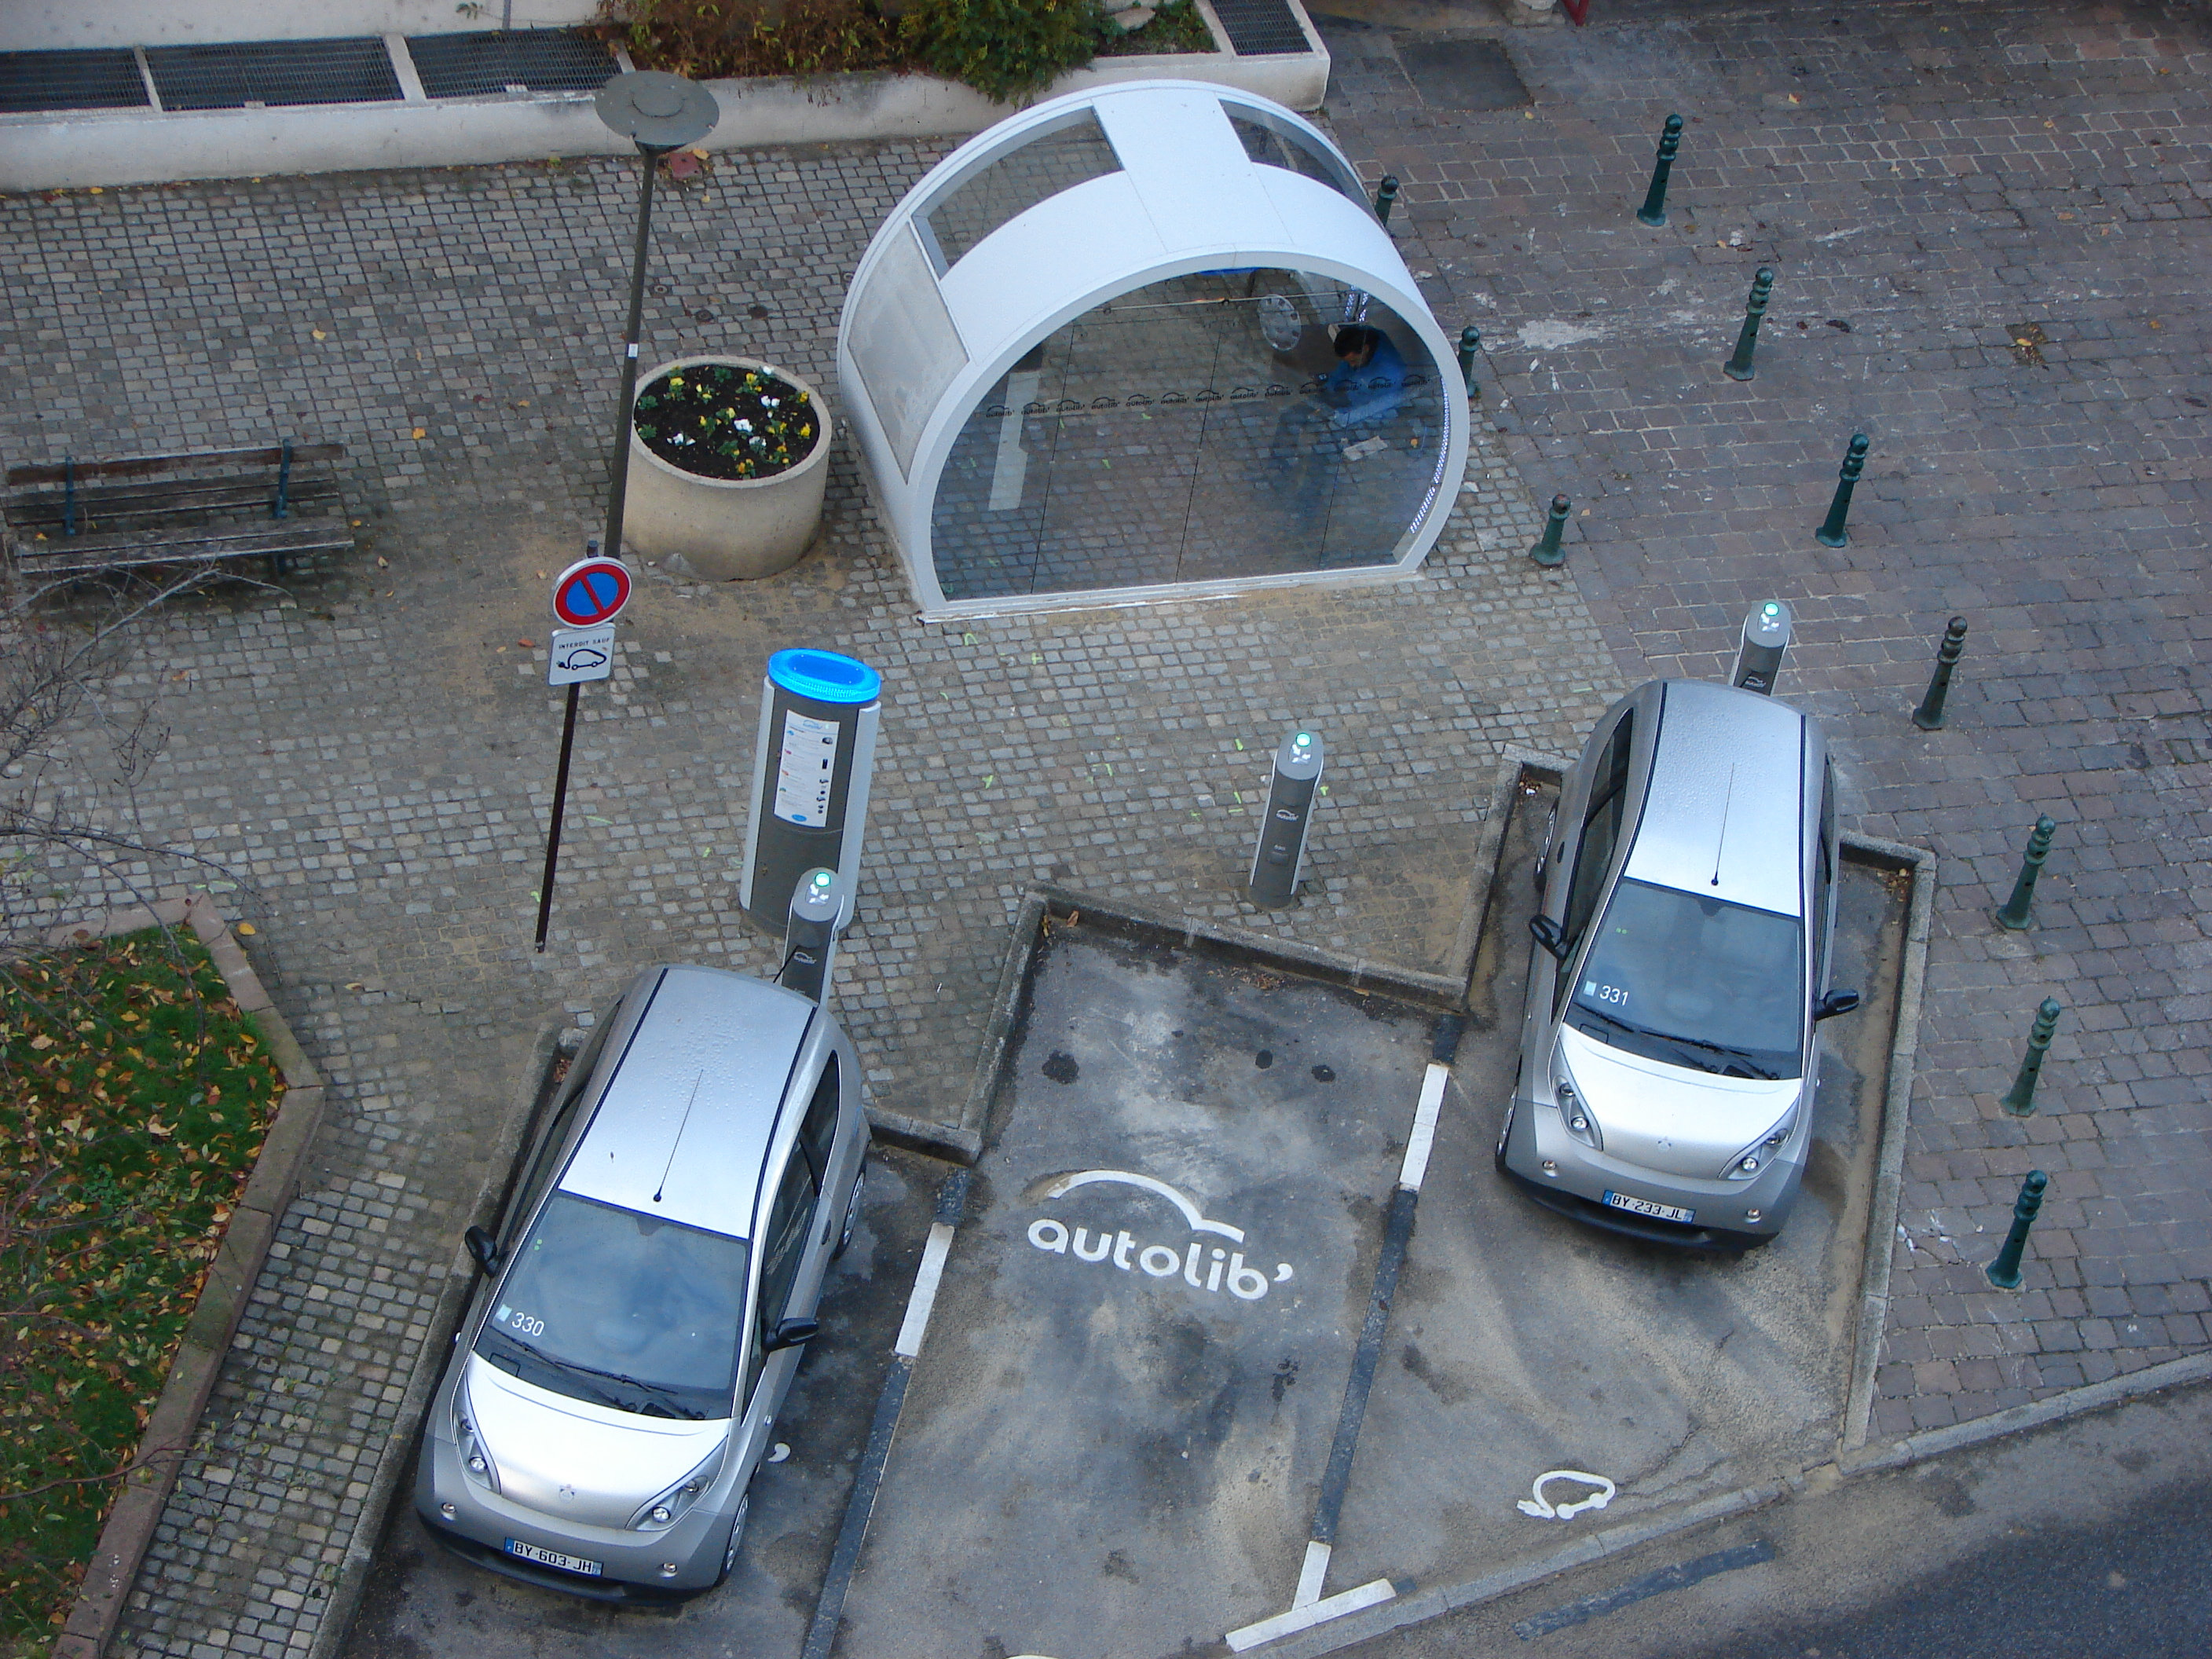 Autolibstation in Suresnes. Copyright: Copyleft